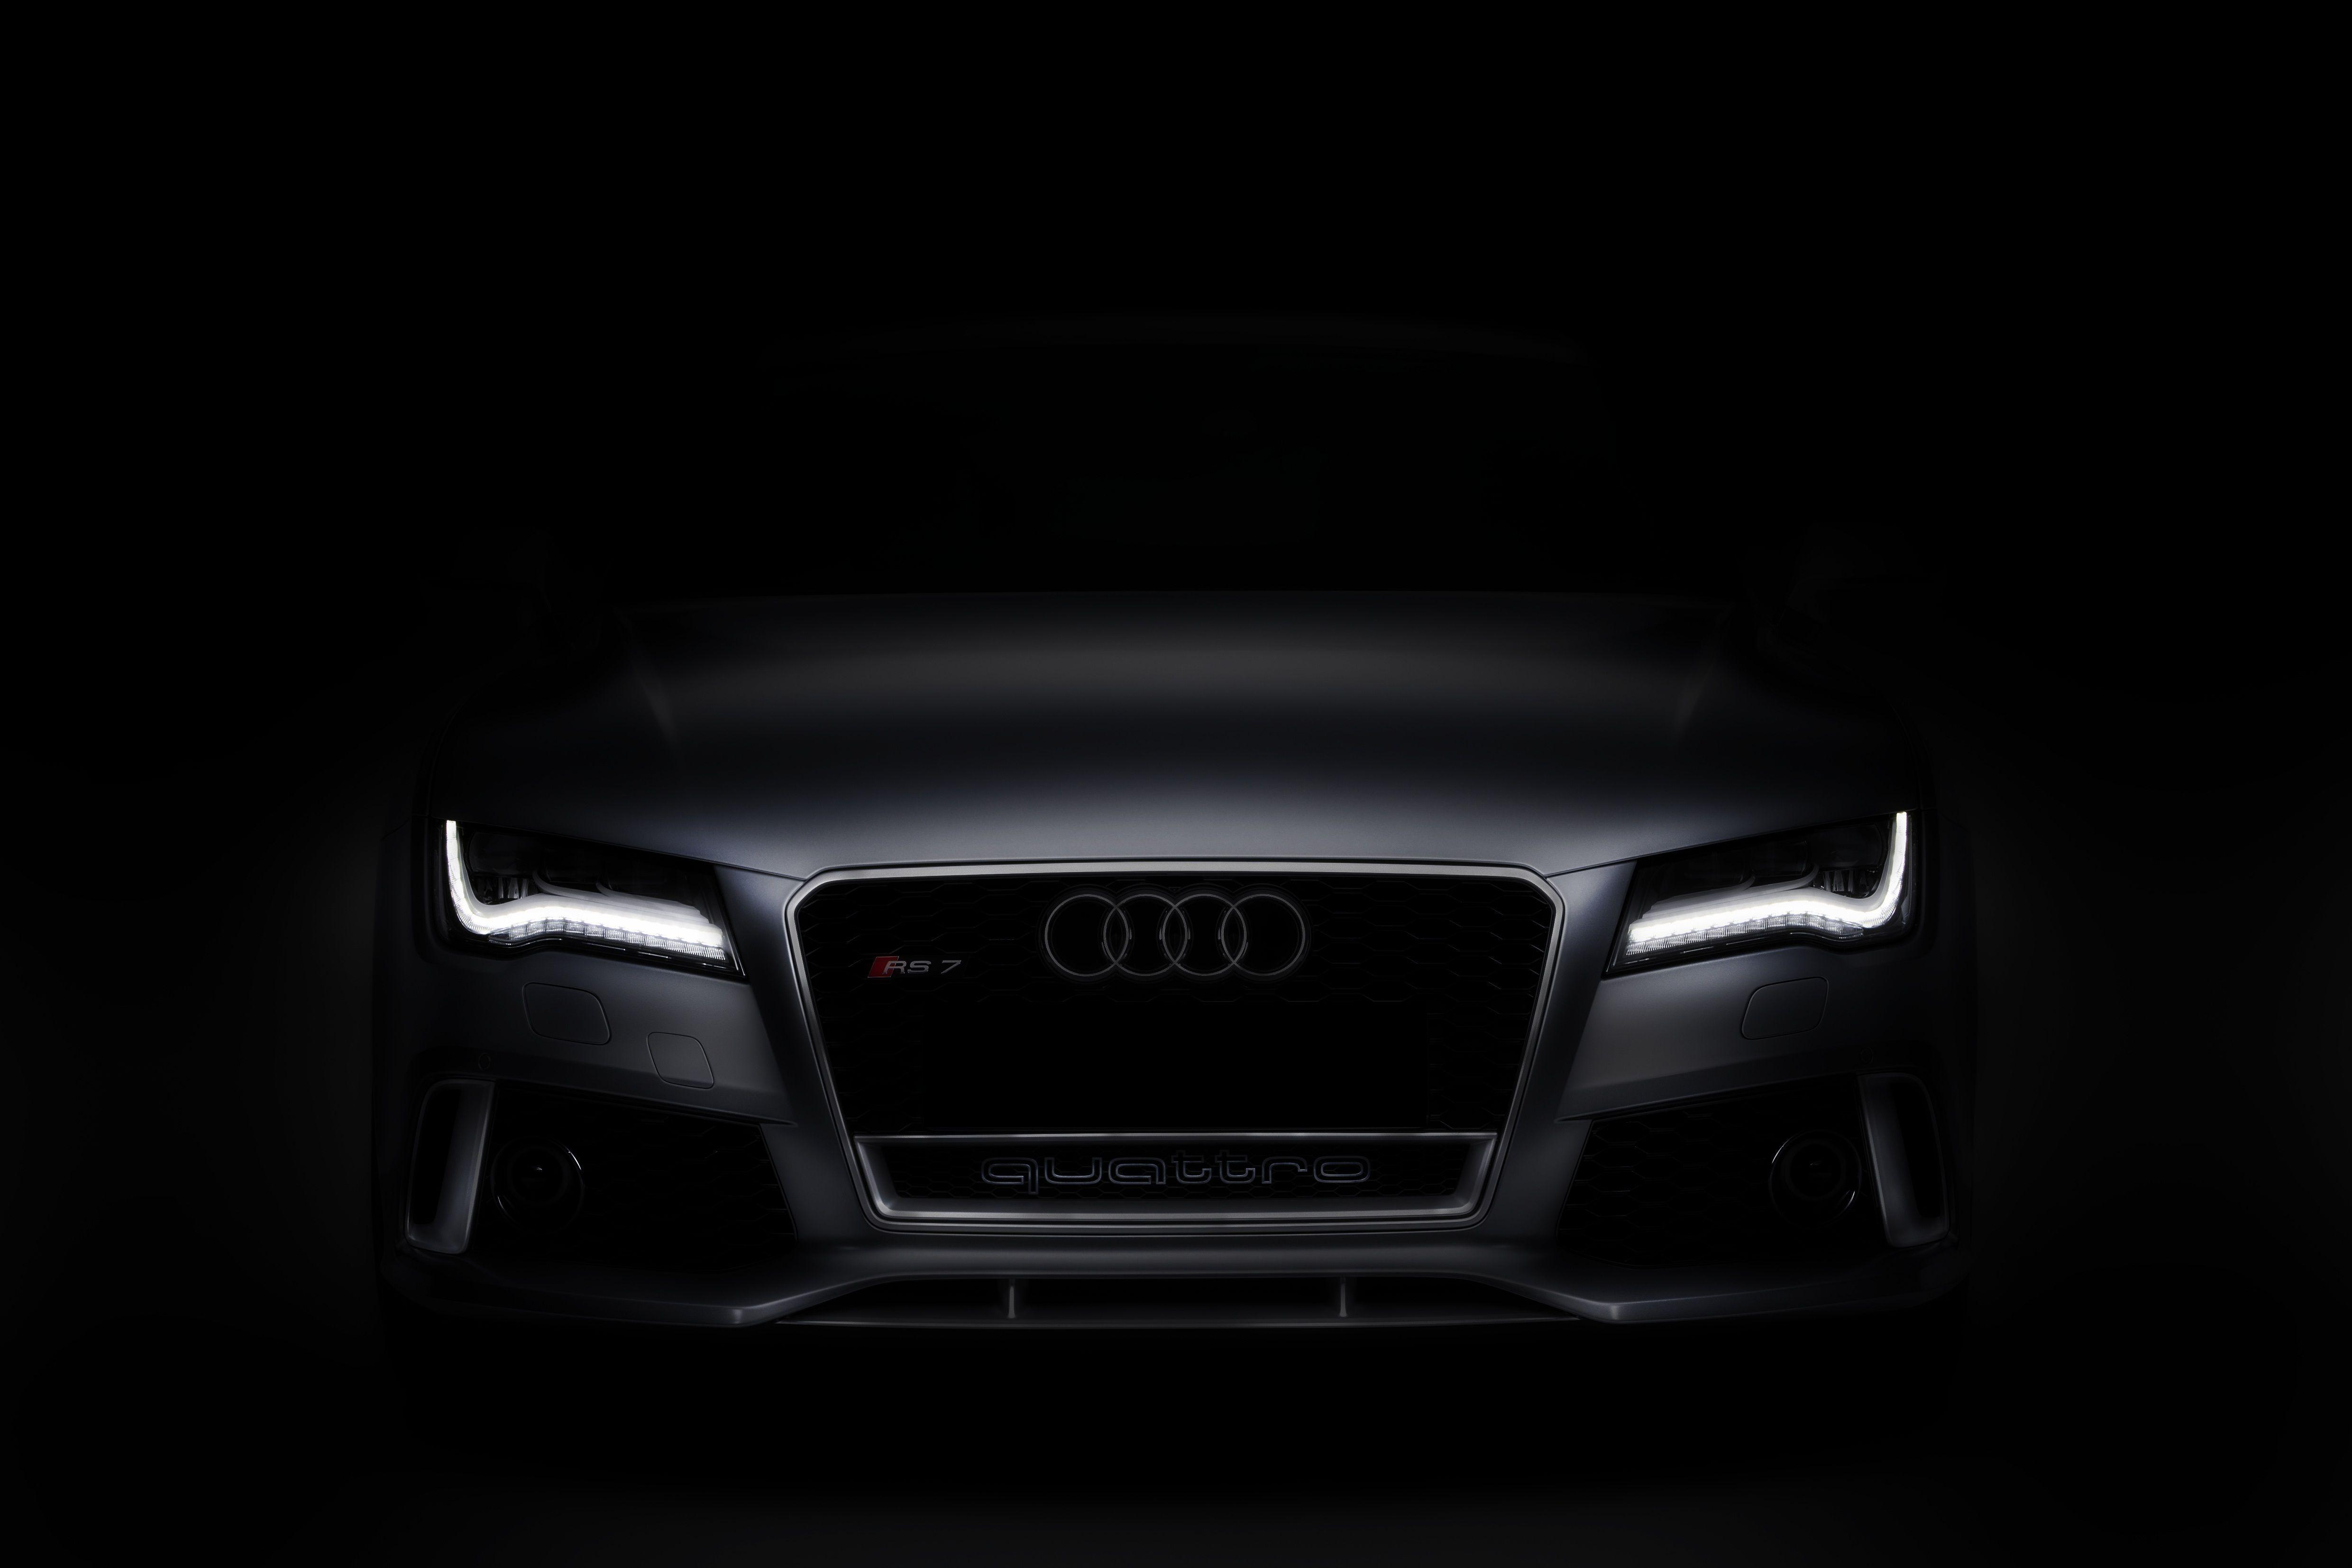 Audi 4k Wallpapers Wallpaper Cave